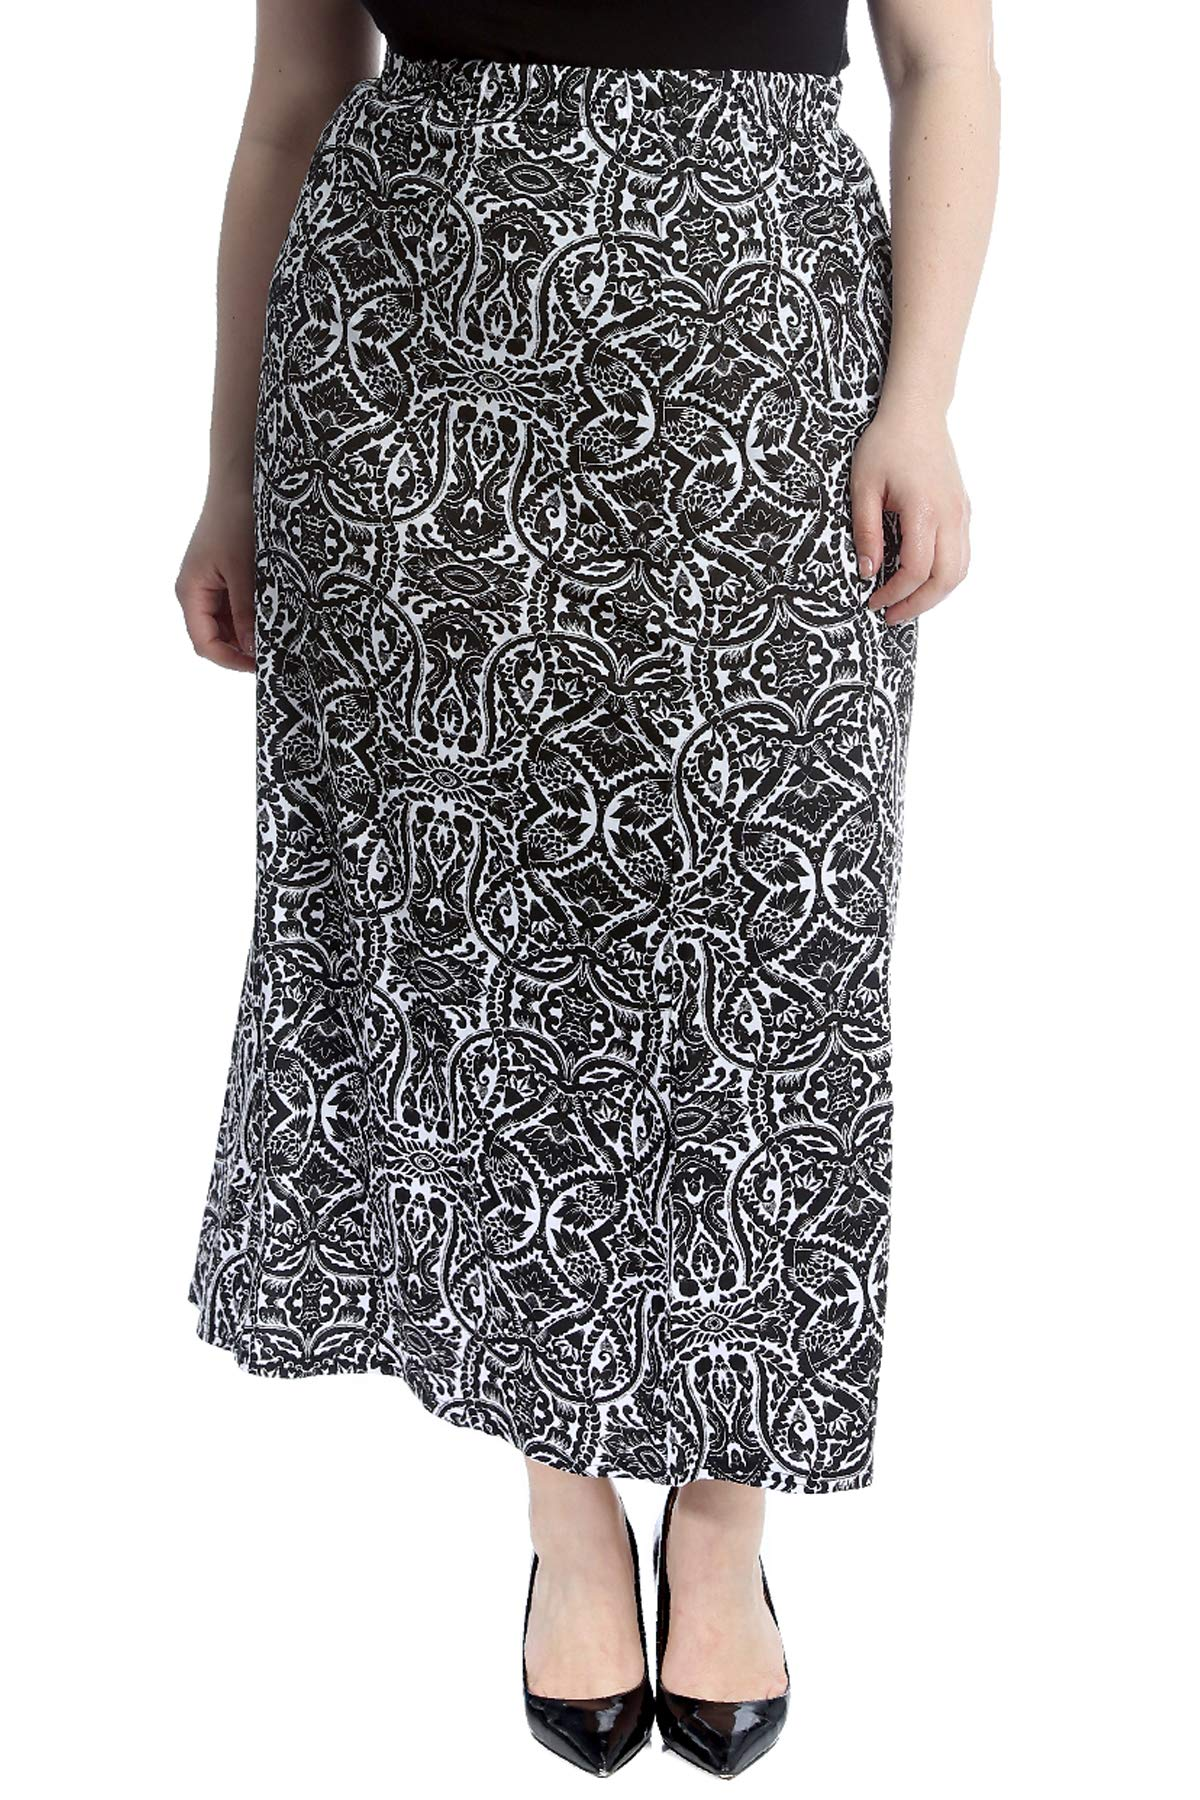 Nouvelle Collection Paisley Mirror Effect Print Mid Calf Skirt White 18